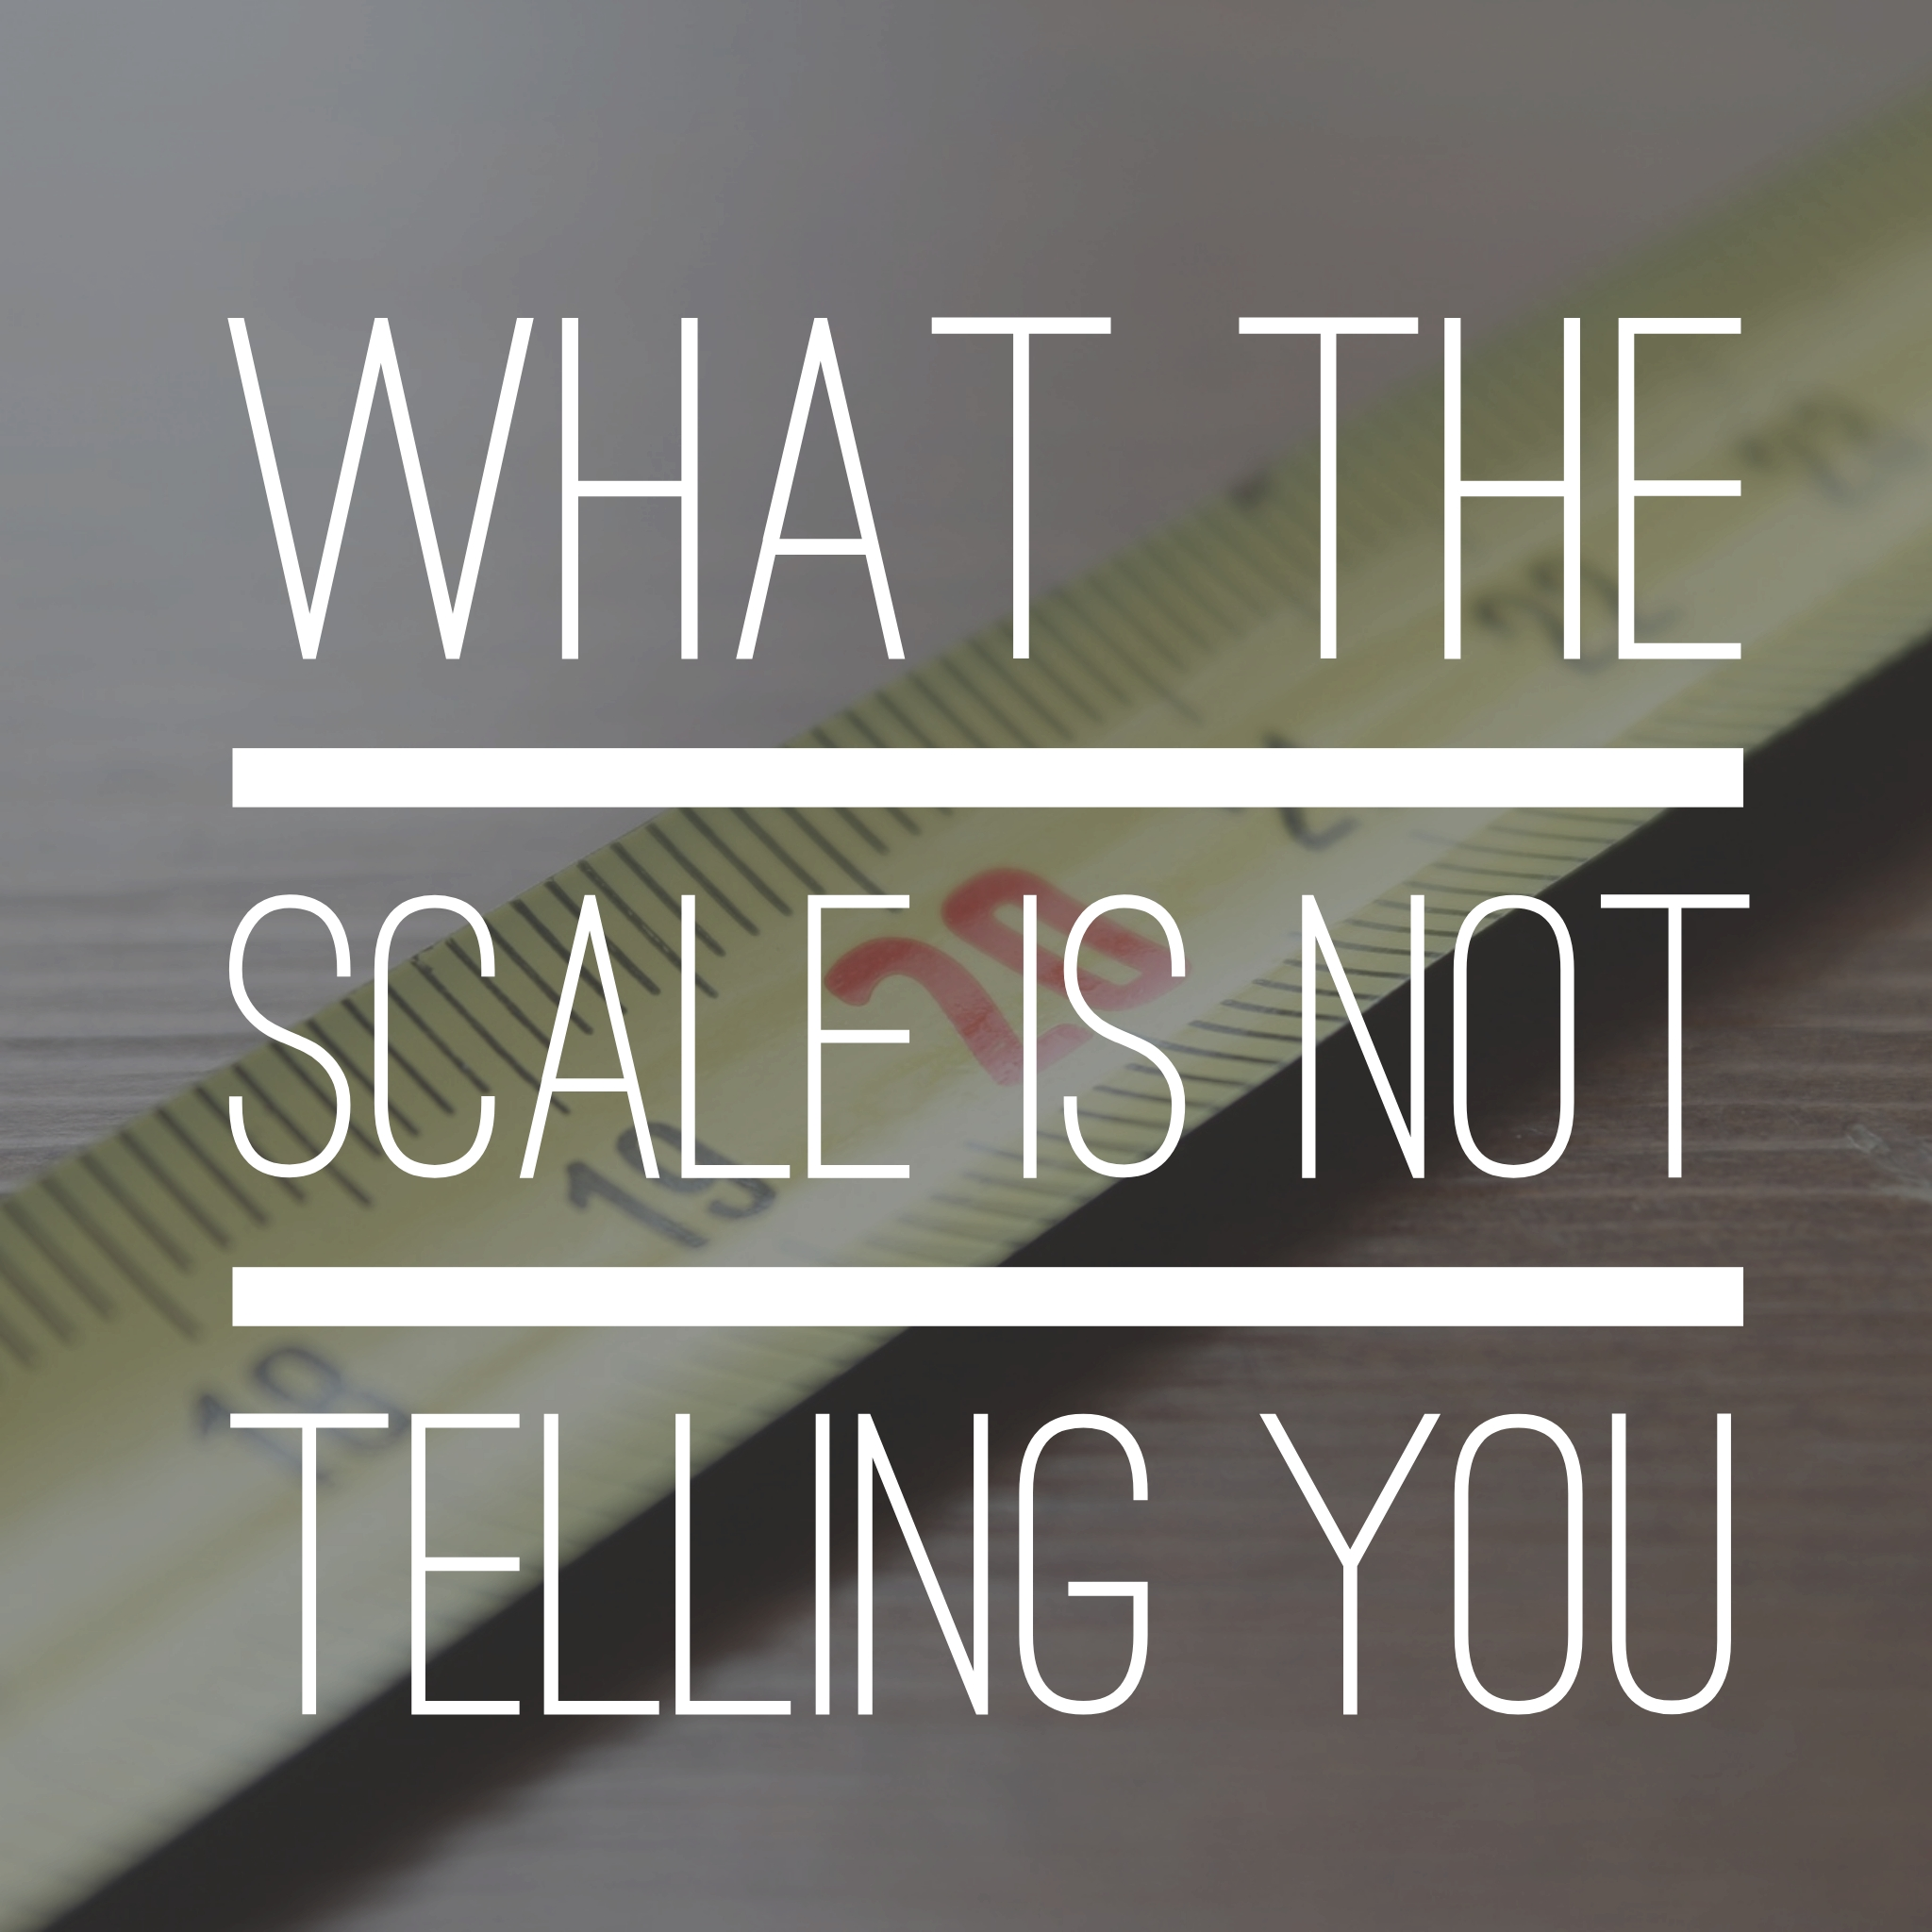 What the scale is not telling you Wordswag.jpg